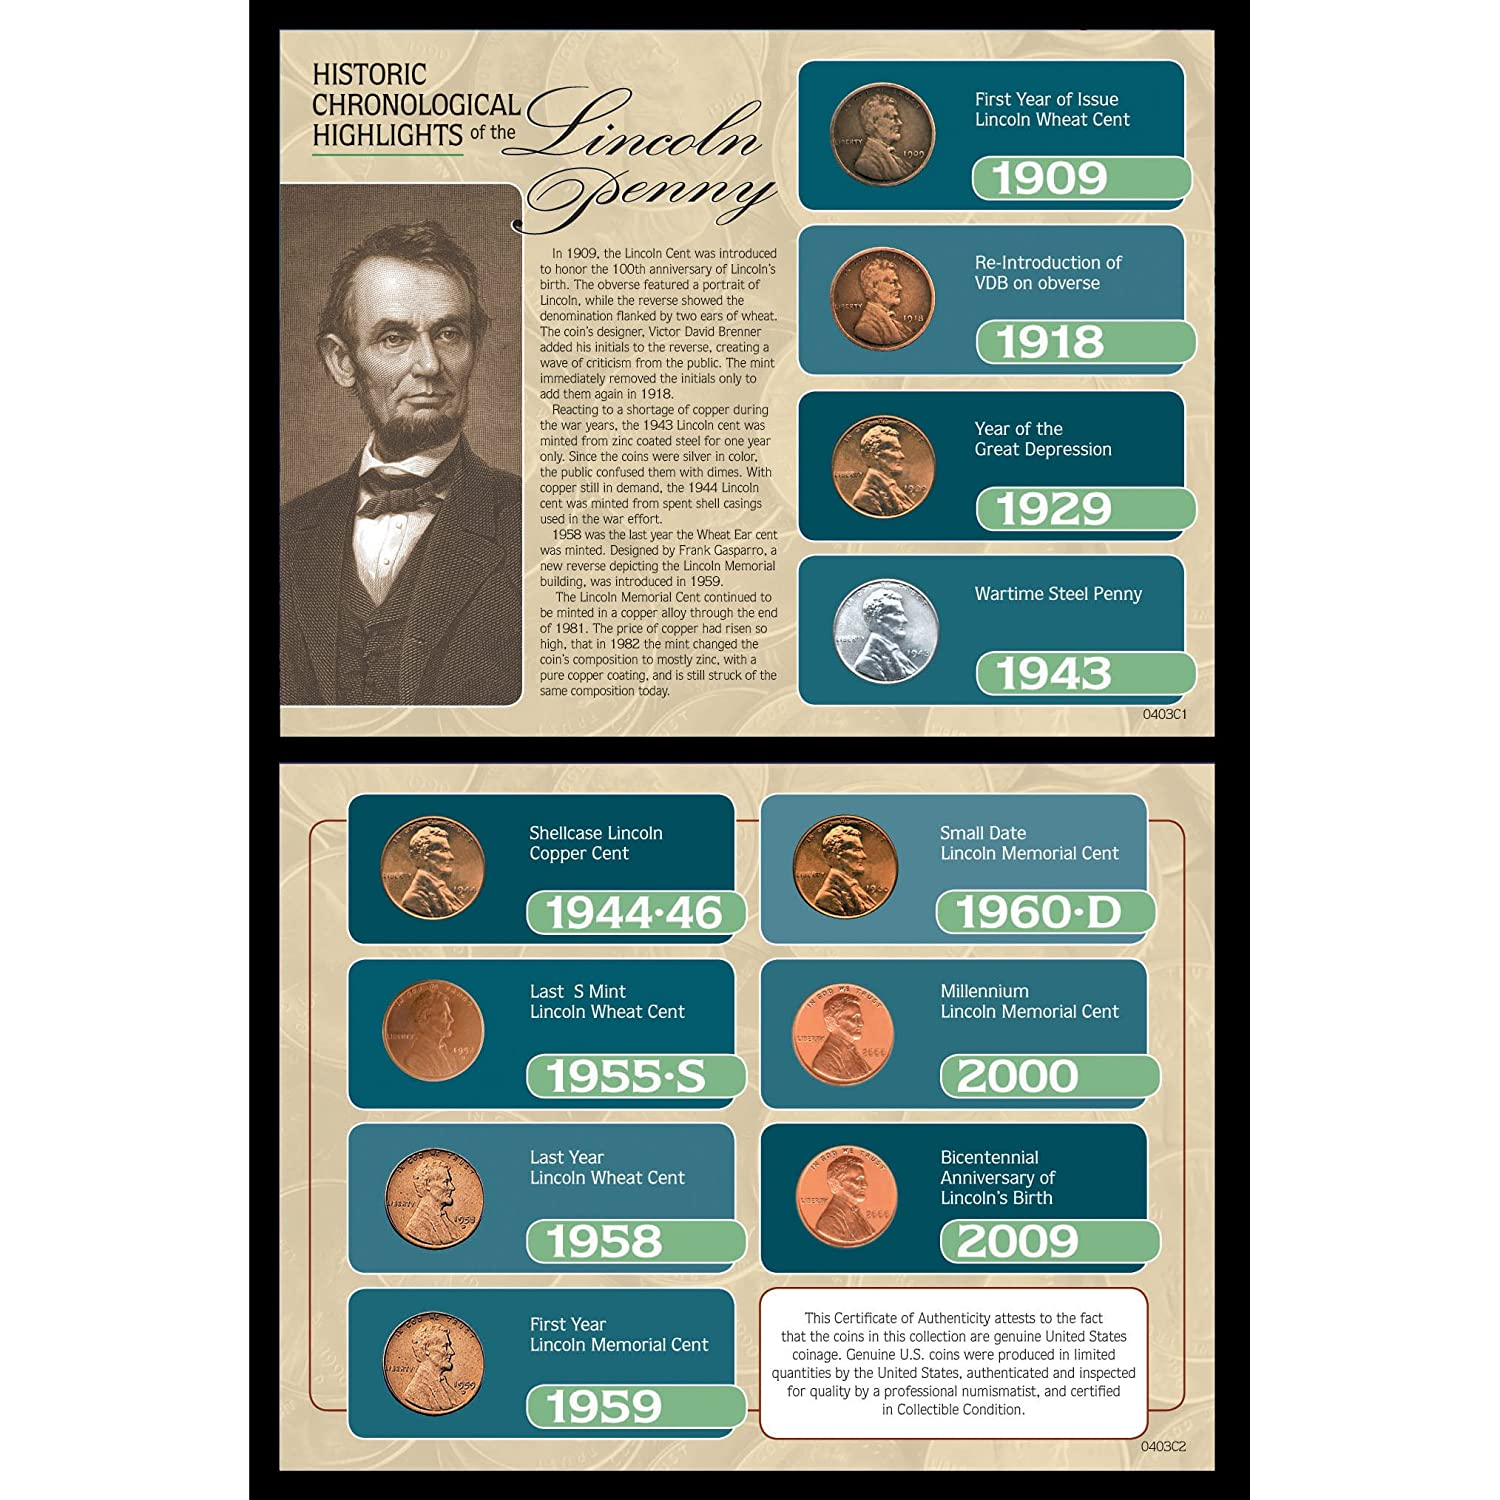 American Coin Treasures Historic Chronological Highlights of The Lincoln Penny